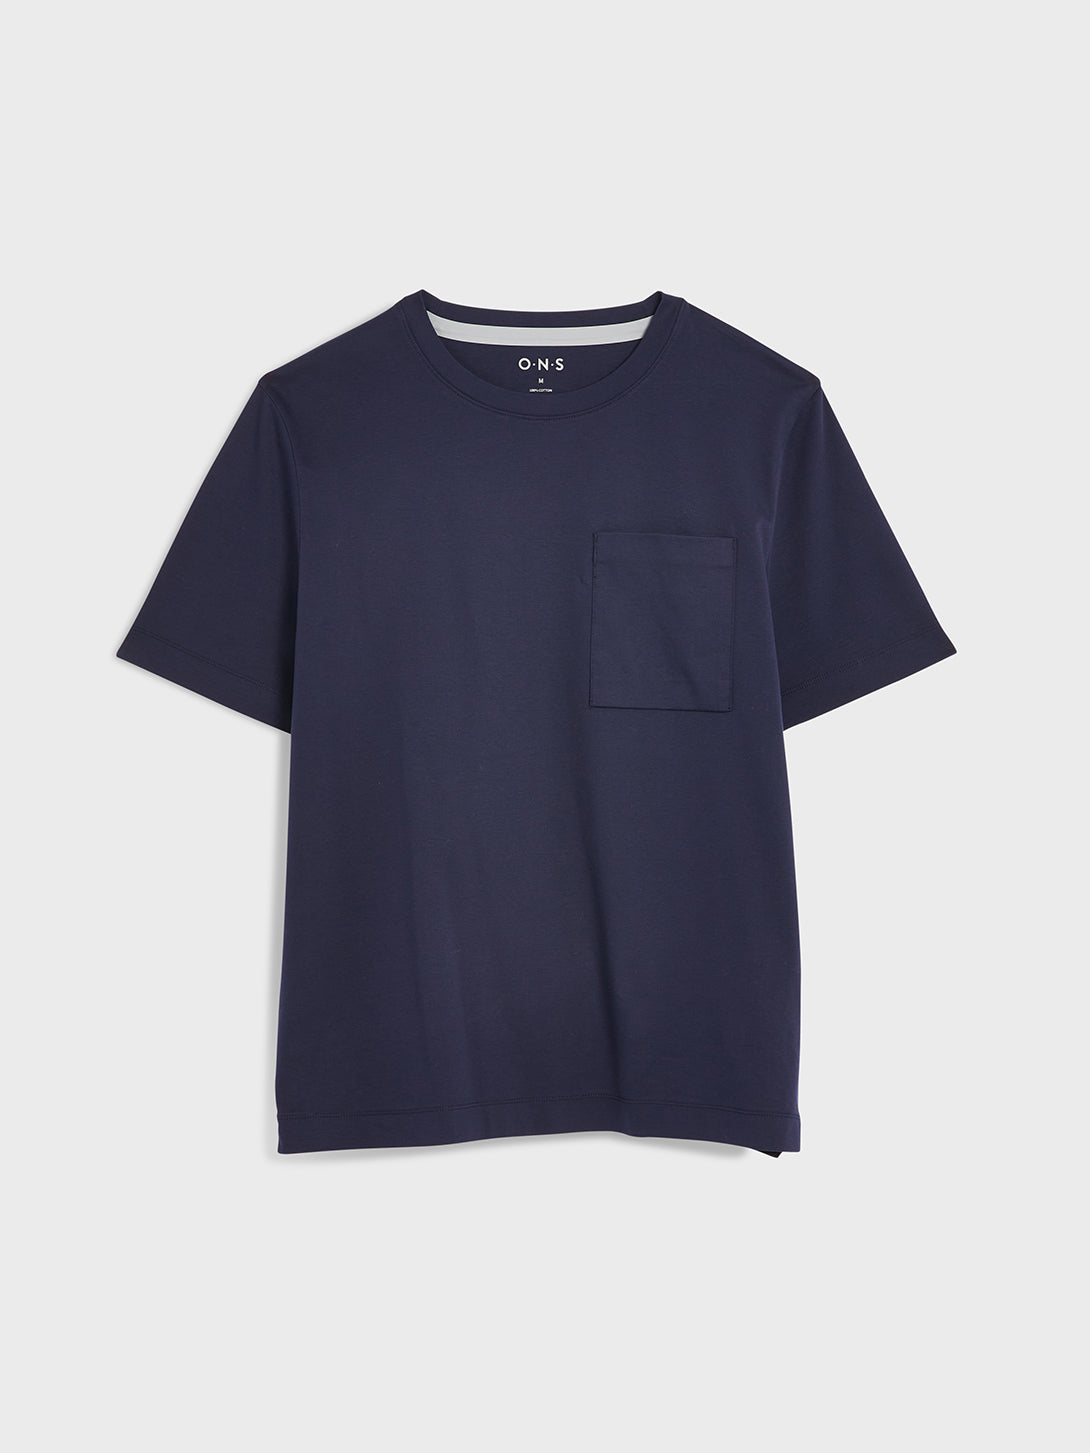 Navy Baseile Pocket Tee Men's cotton t-shirts ONS Clothing